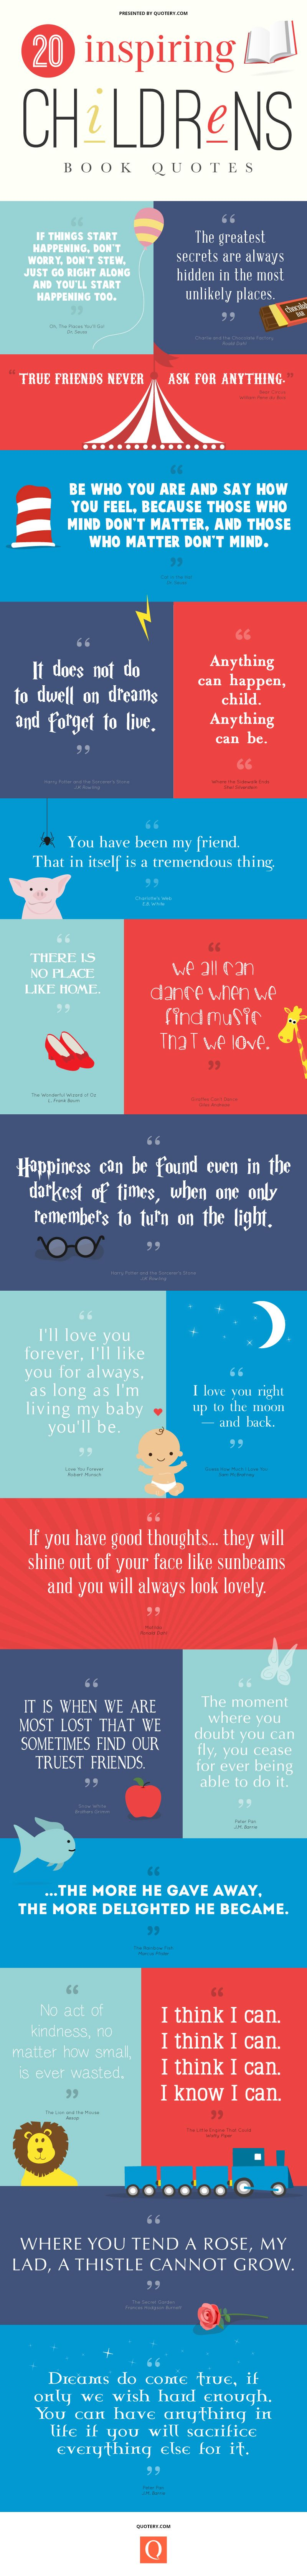 Inspirational Quotes About Loving Children Amusing 20 Inspiring Children's Book Quotes Infographic  Books Future